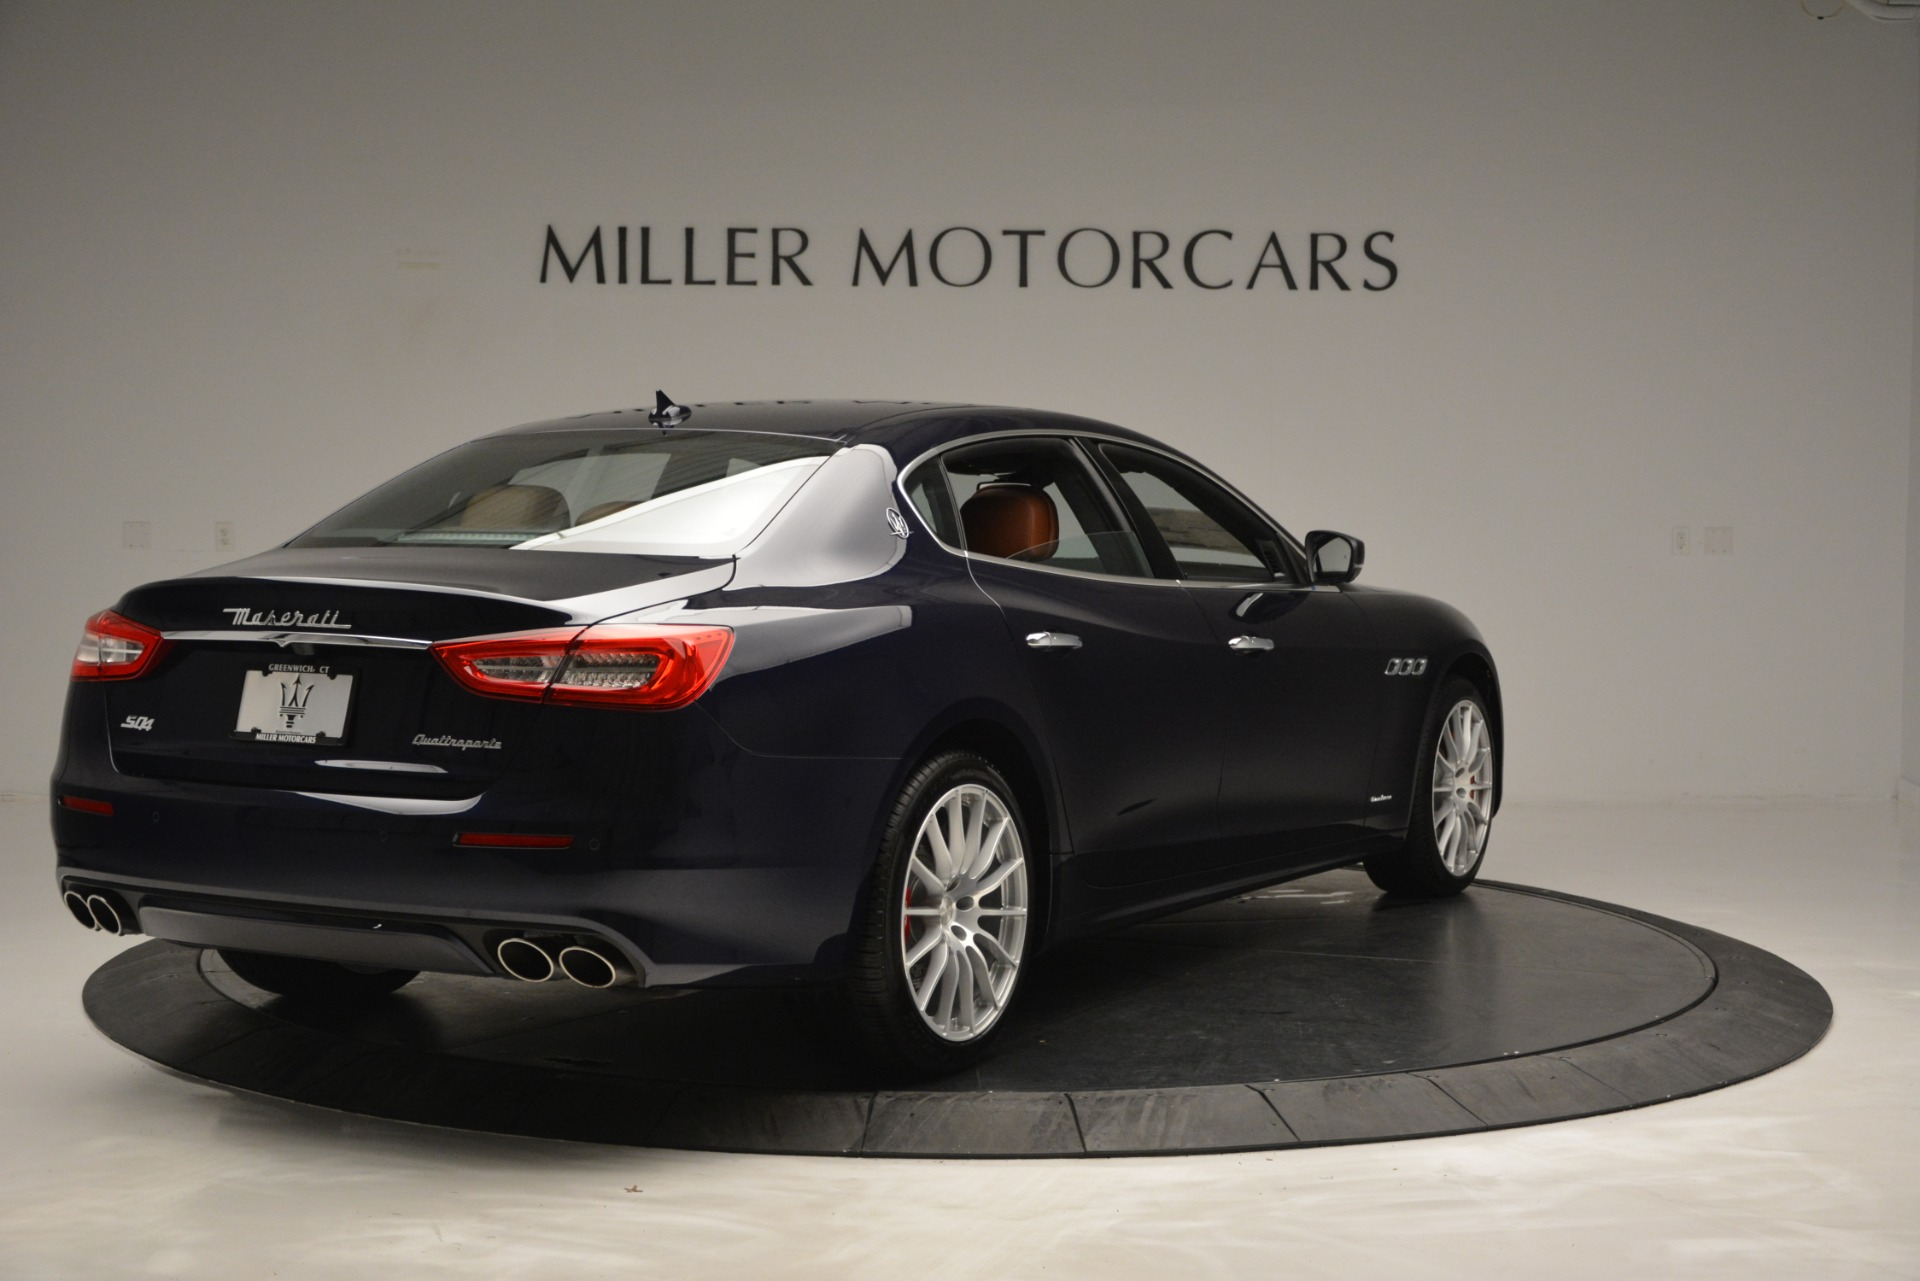 New 2019 Maserati Quattroporte S Q4 GranLusso For Sale In Westport, CT 2620_p7